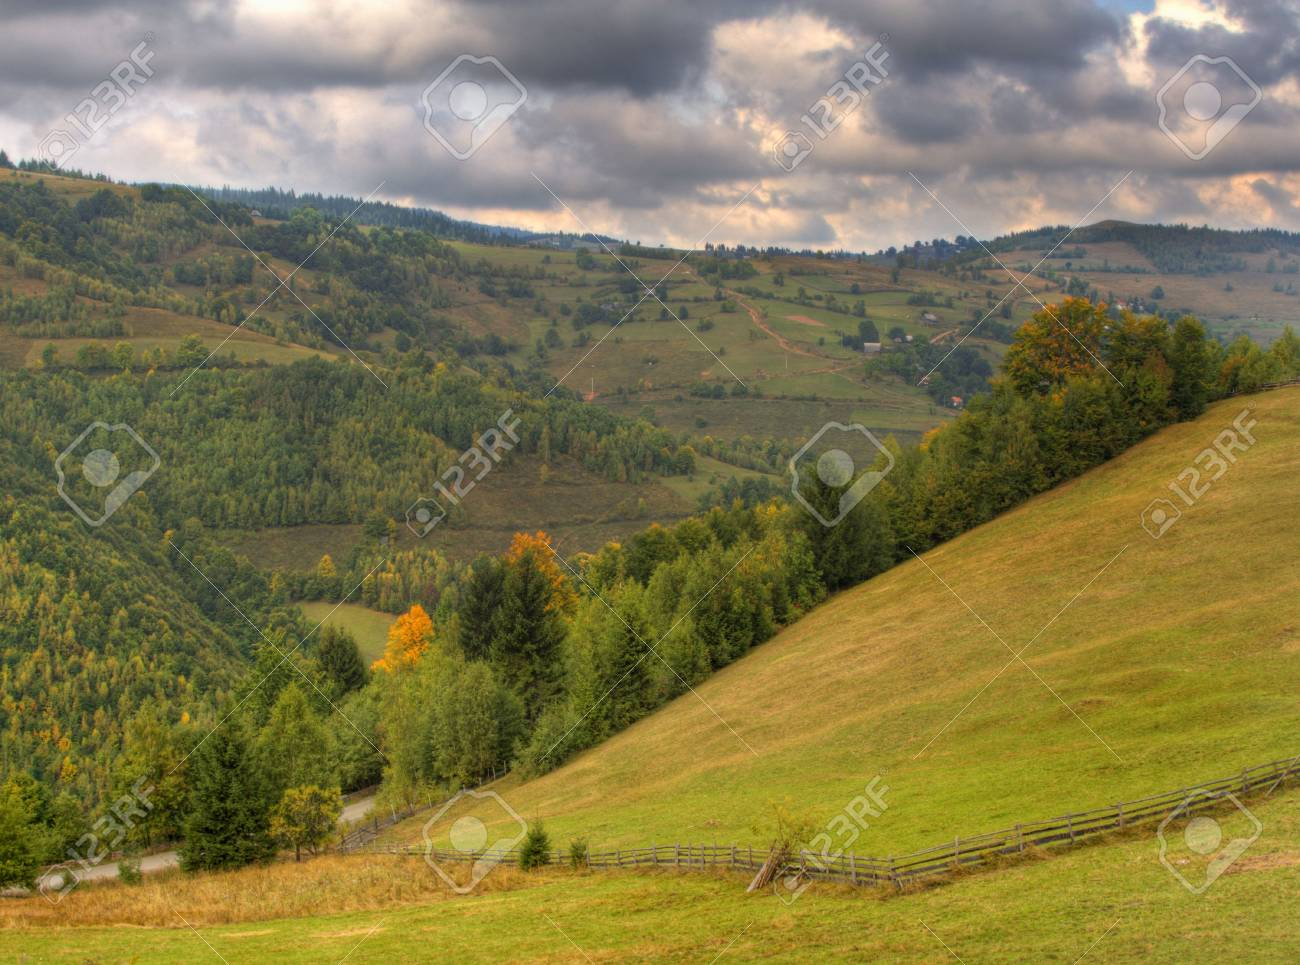 Autumn mountain landscape in a cloudy day.Location:Apuseni Mountains,Romania.(HDR image) Stock Photo - 3797256